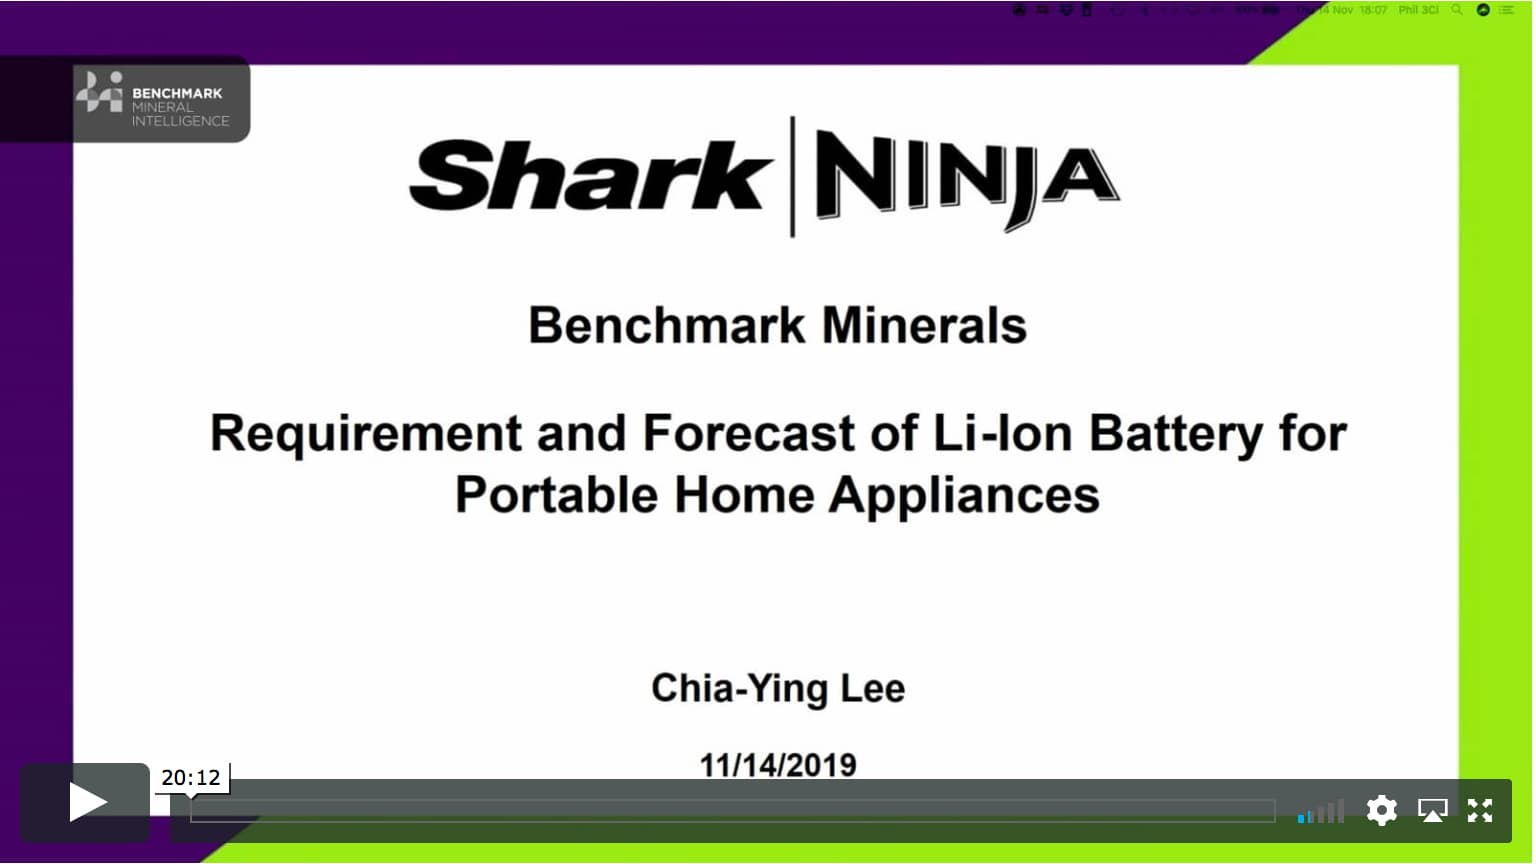 Requirement and forecast of li-ion battery for portable home appliances